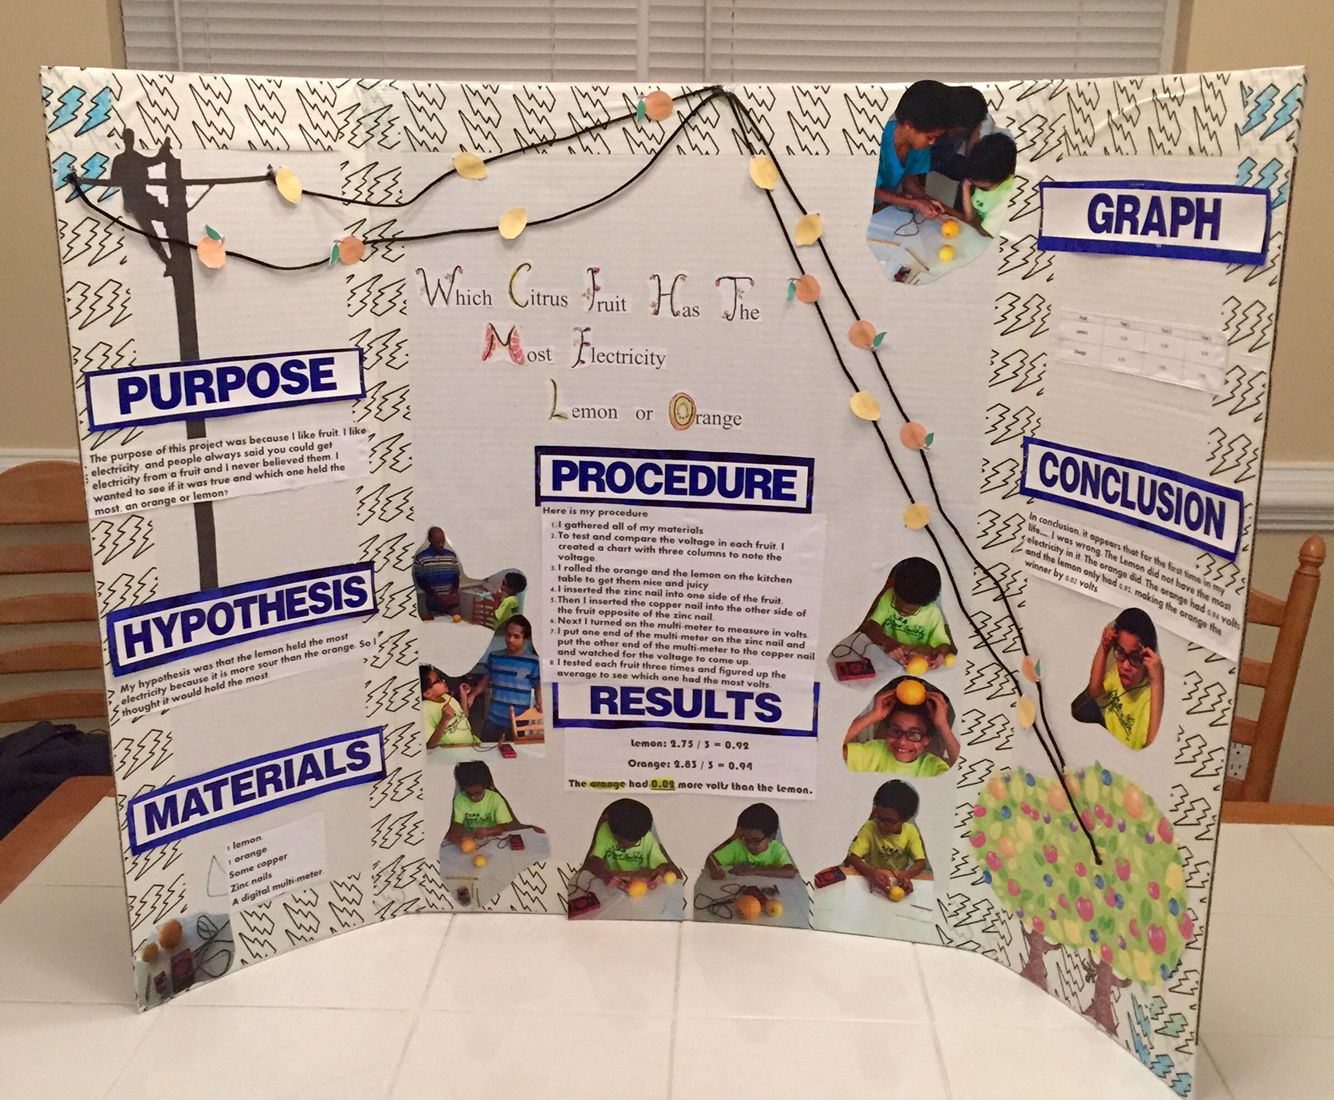 David S Science Fair Project Backboard Which Citrus Fruit Has The Most Electricity An Orange Science Fair Projects Boards Science Fair Projects Science Fair